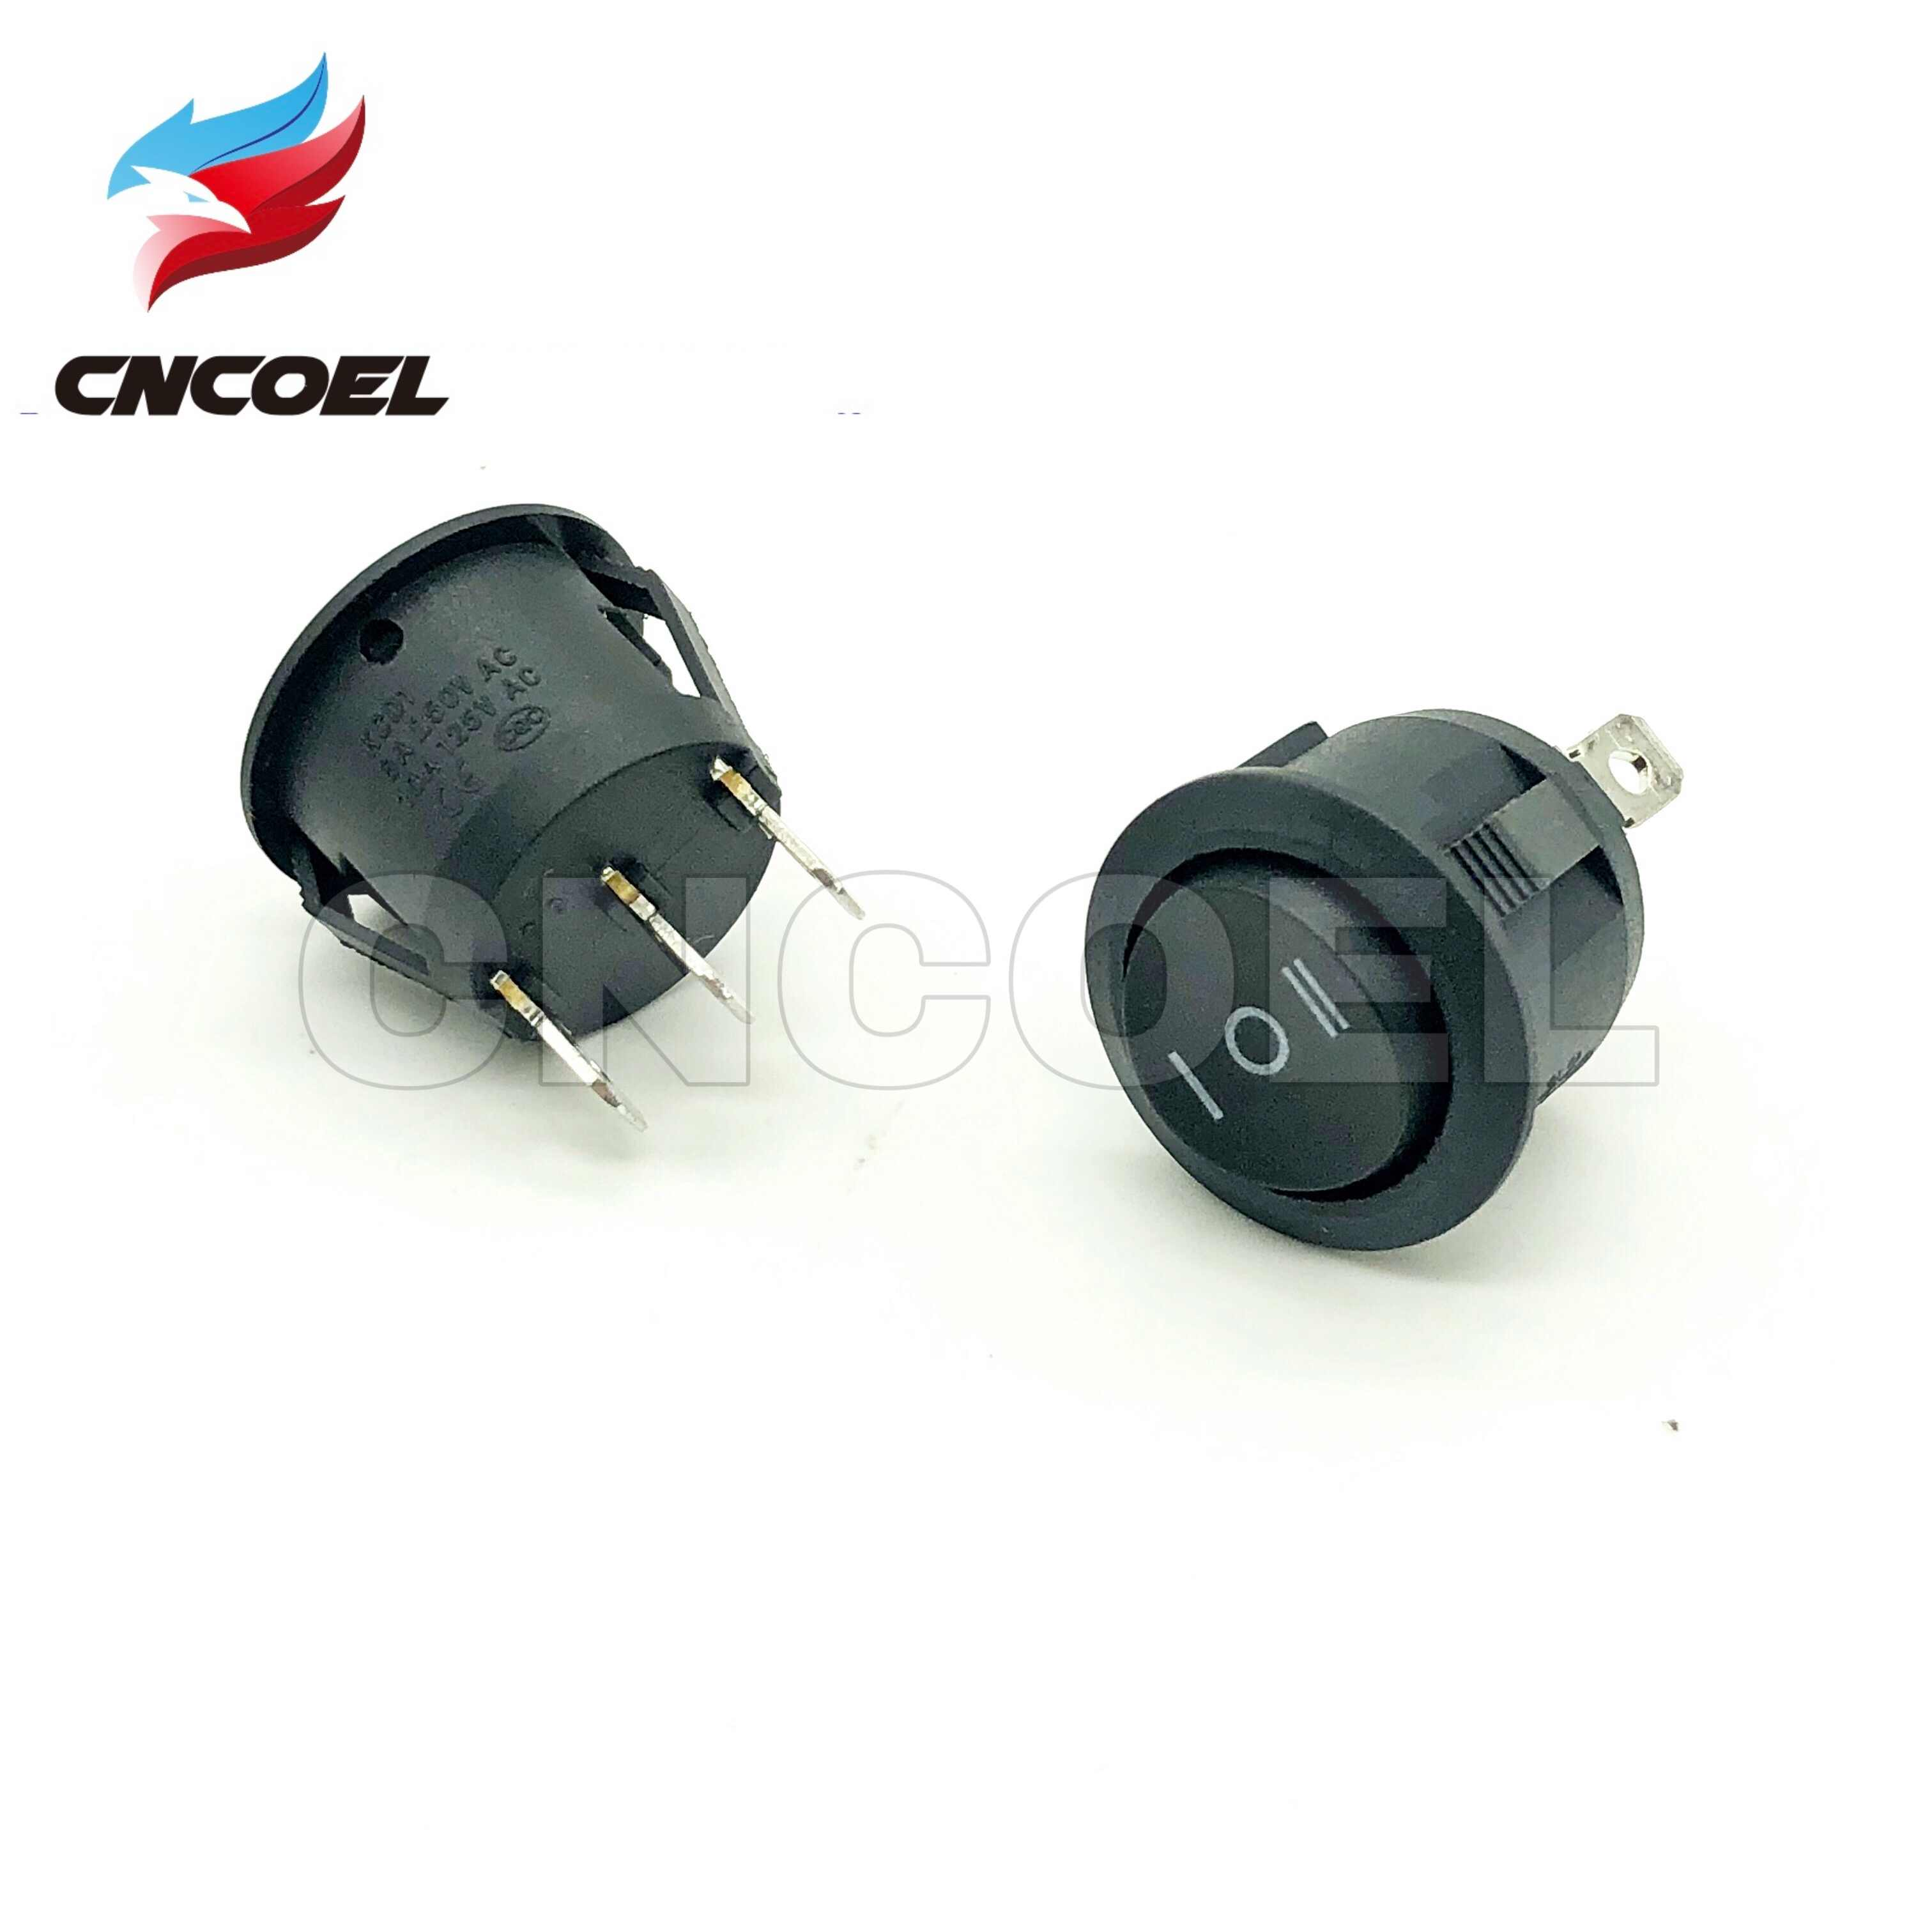 2 pcs/lot KCD1 interrupteur à bascule bateau ON-OFF-ON noir 3 positions SPDT enfichable 3 broches interrupteur rond 10A/125V 6A/250V AC